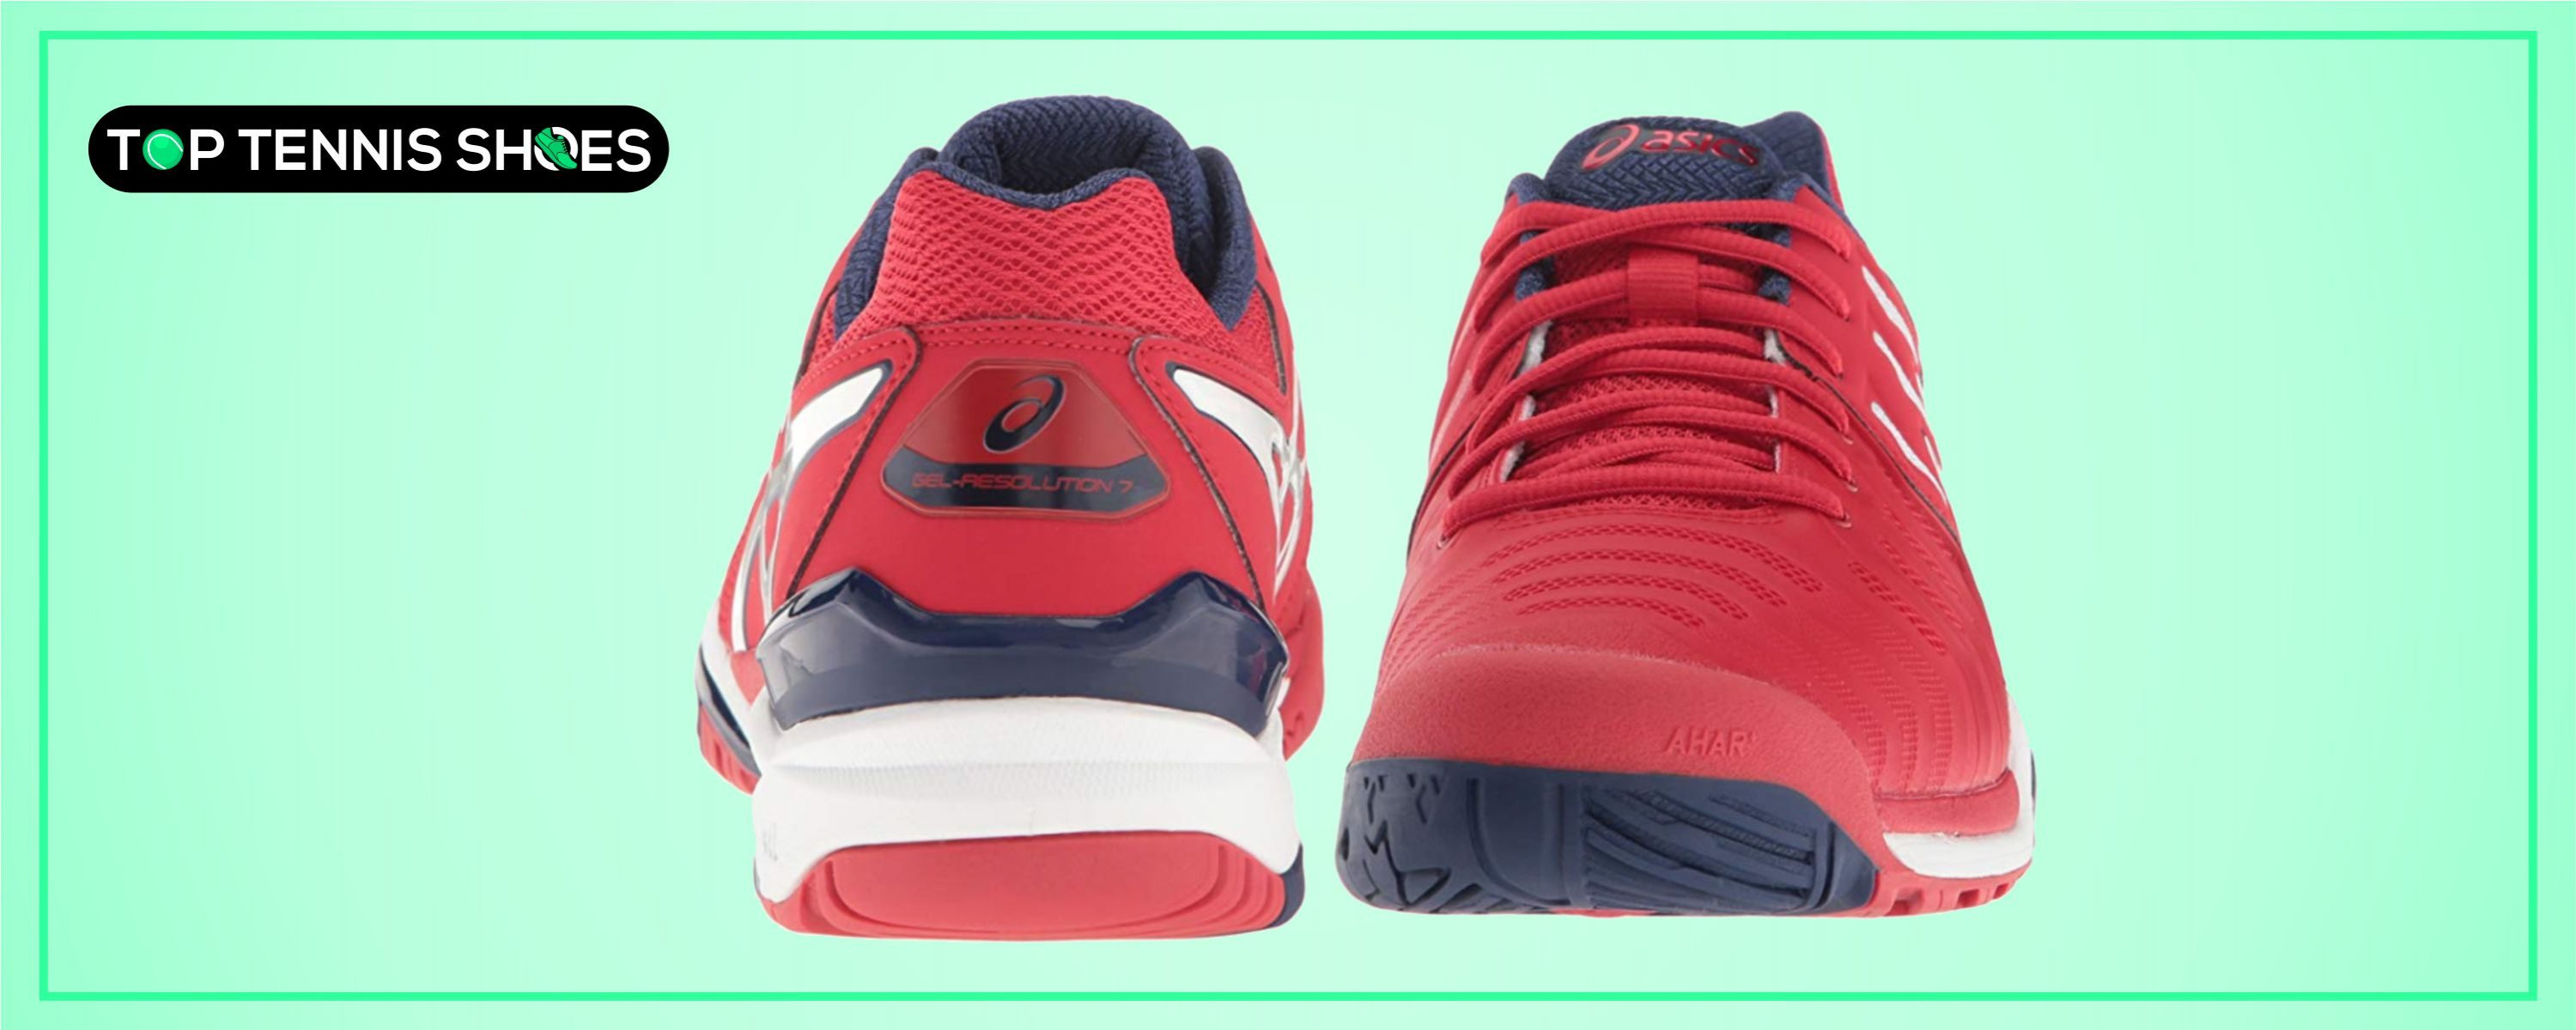 top tennis shoes for heavy players